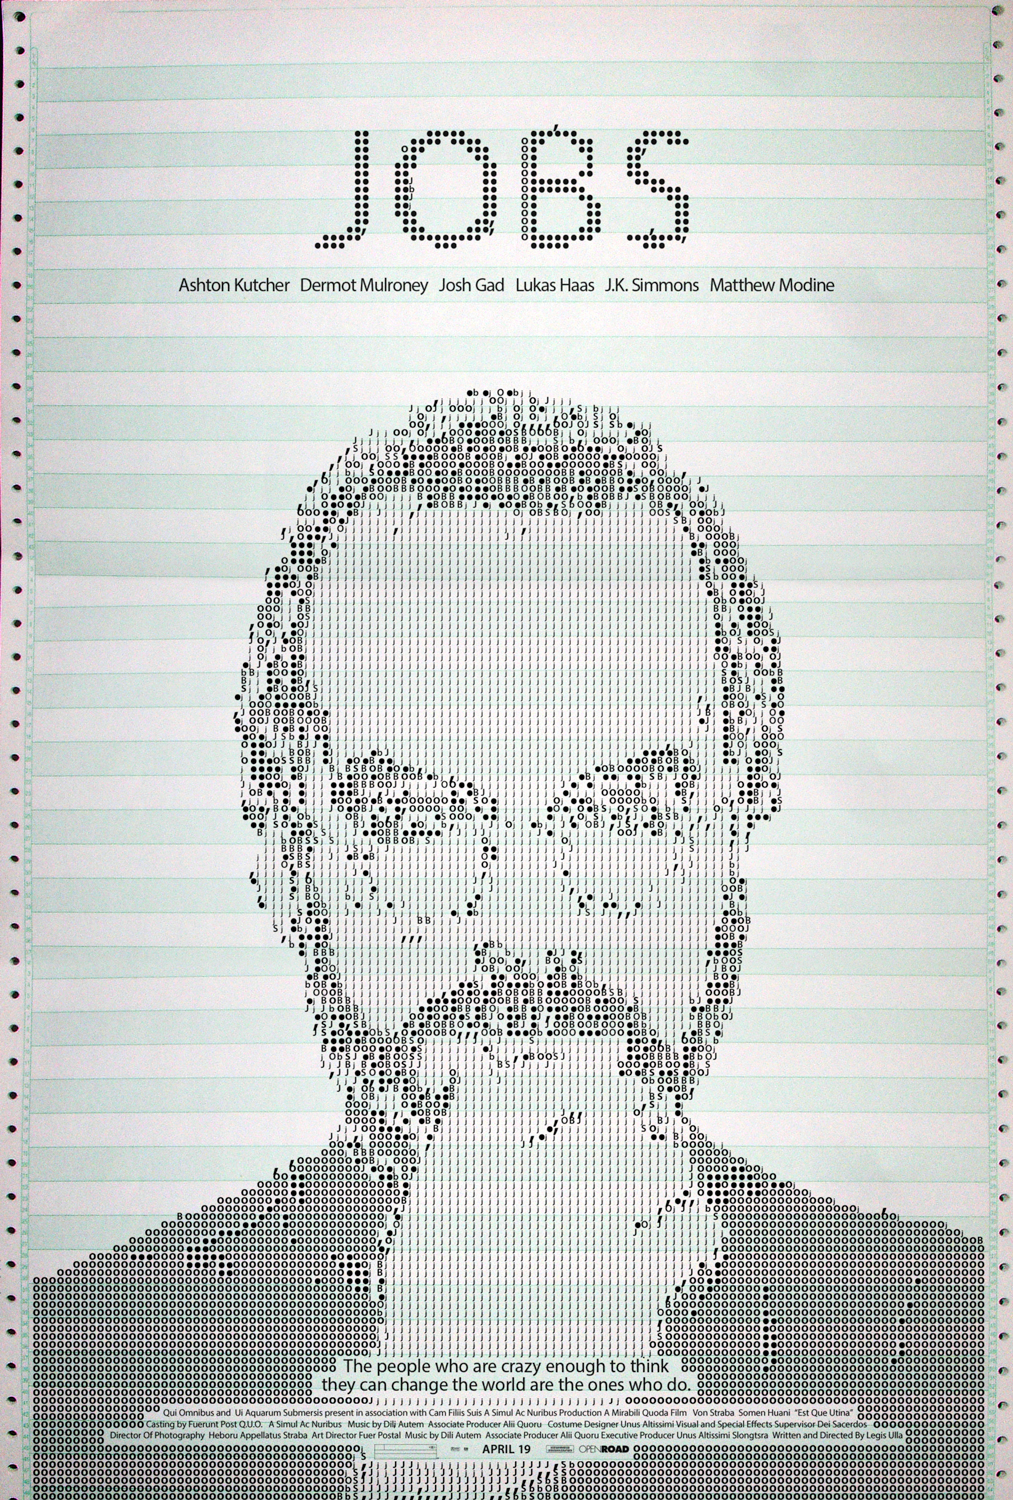 """Holms' film poster for """"Jobs"""" features Myriad, an Adobe Original used as Apple's corporate typeface."""